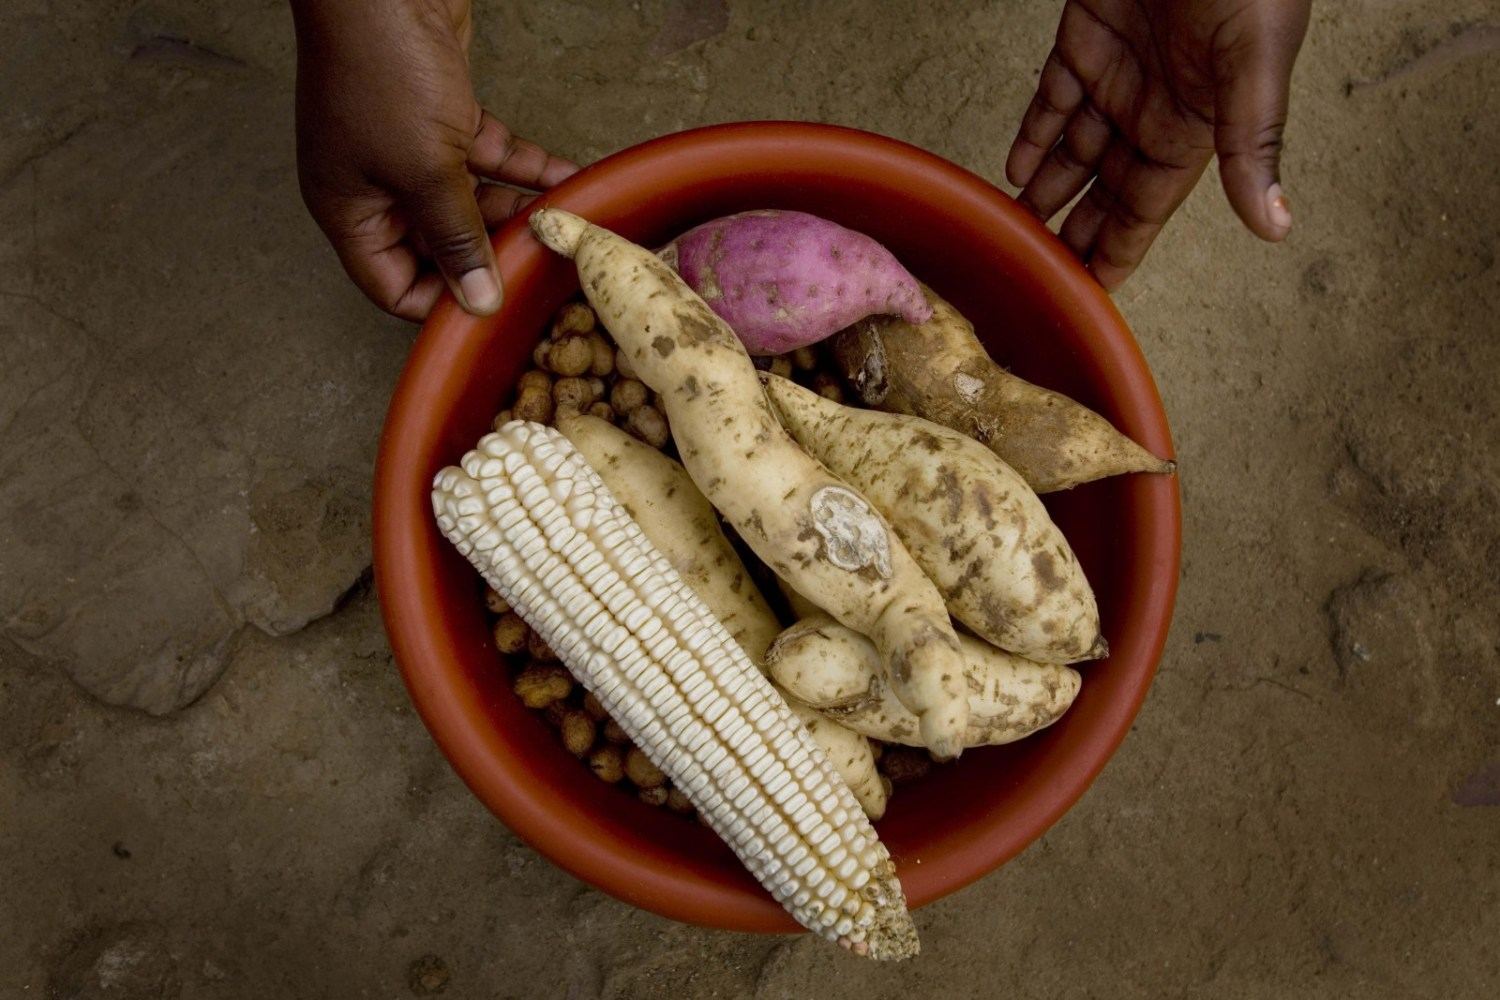 Baskets of food, like this one distributed to internally displaced communities in Zimbabwe in 2009,  are just one form of assistance aid agencies provide. Many instead prefer to give cash transfers, but Zimbabwe's cash shortage could hinder such programs over the next six months. Photo courtesy Kate Holt / IRIN via Flickr Creative Commons. https://www.flickr.com/photos/irinphotos/4194646508/